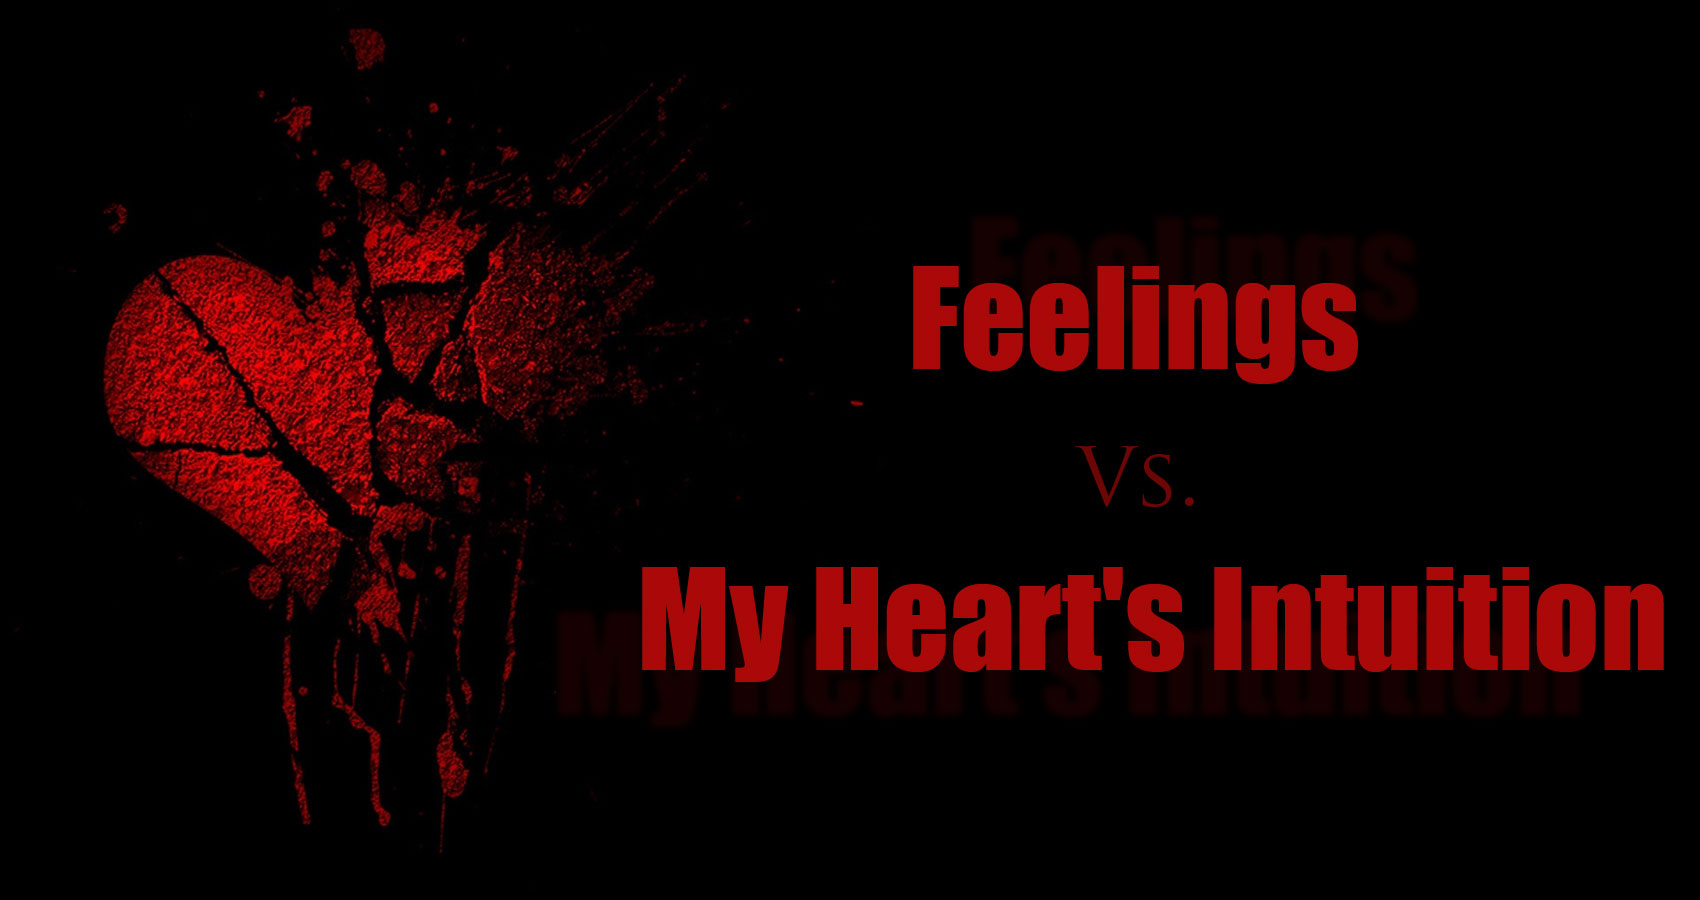 Feelings Vs. My Heart's Intuition at Spillwords.com